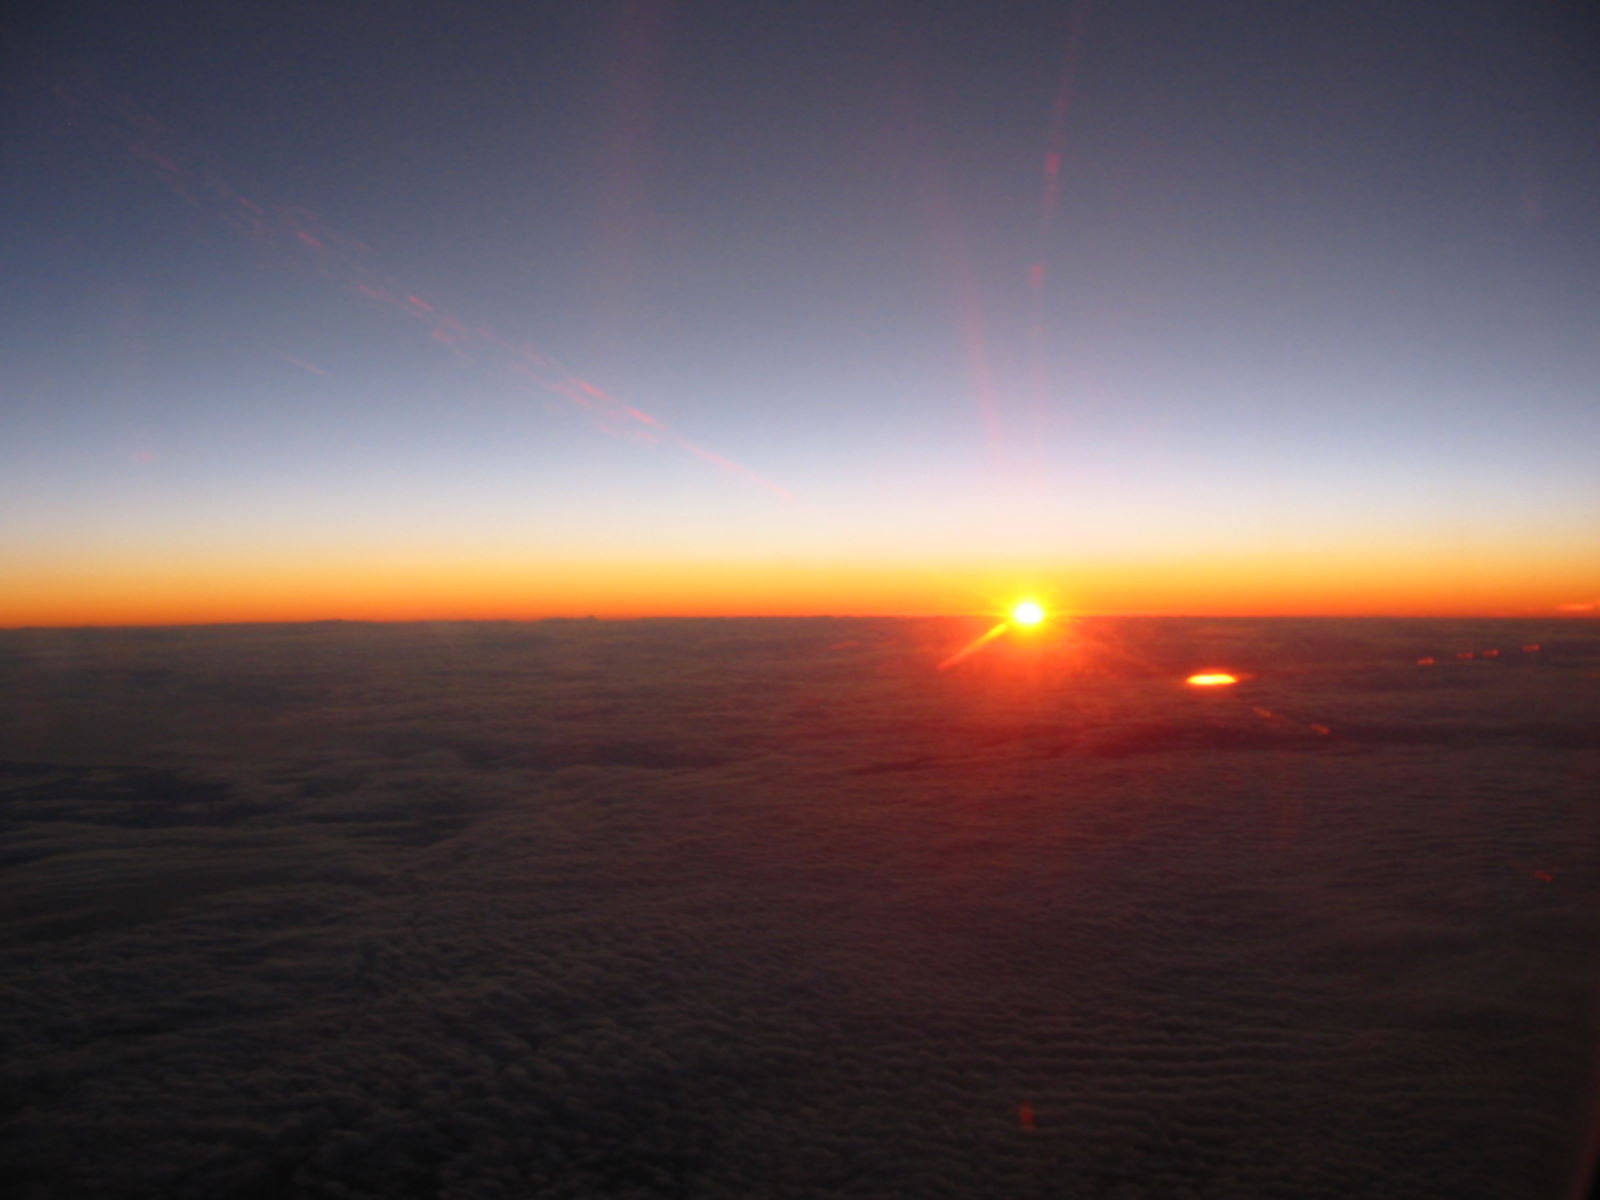 Sunset over the Caspian Sea from 35,000 feet up